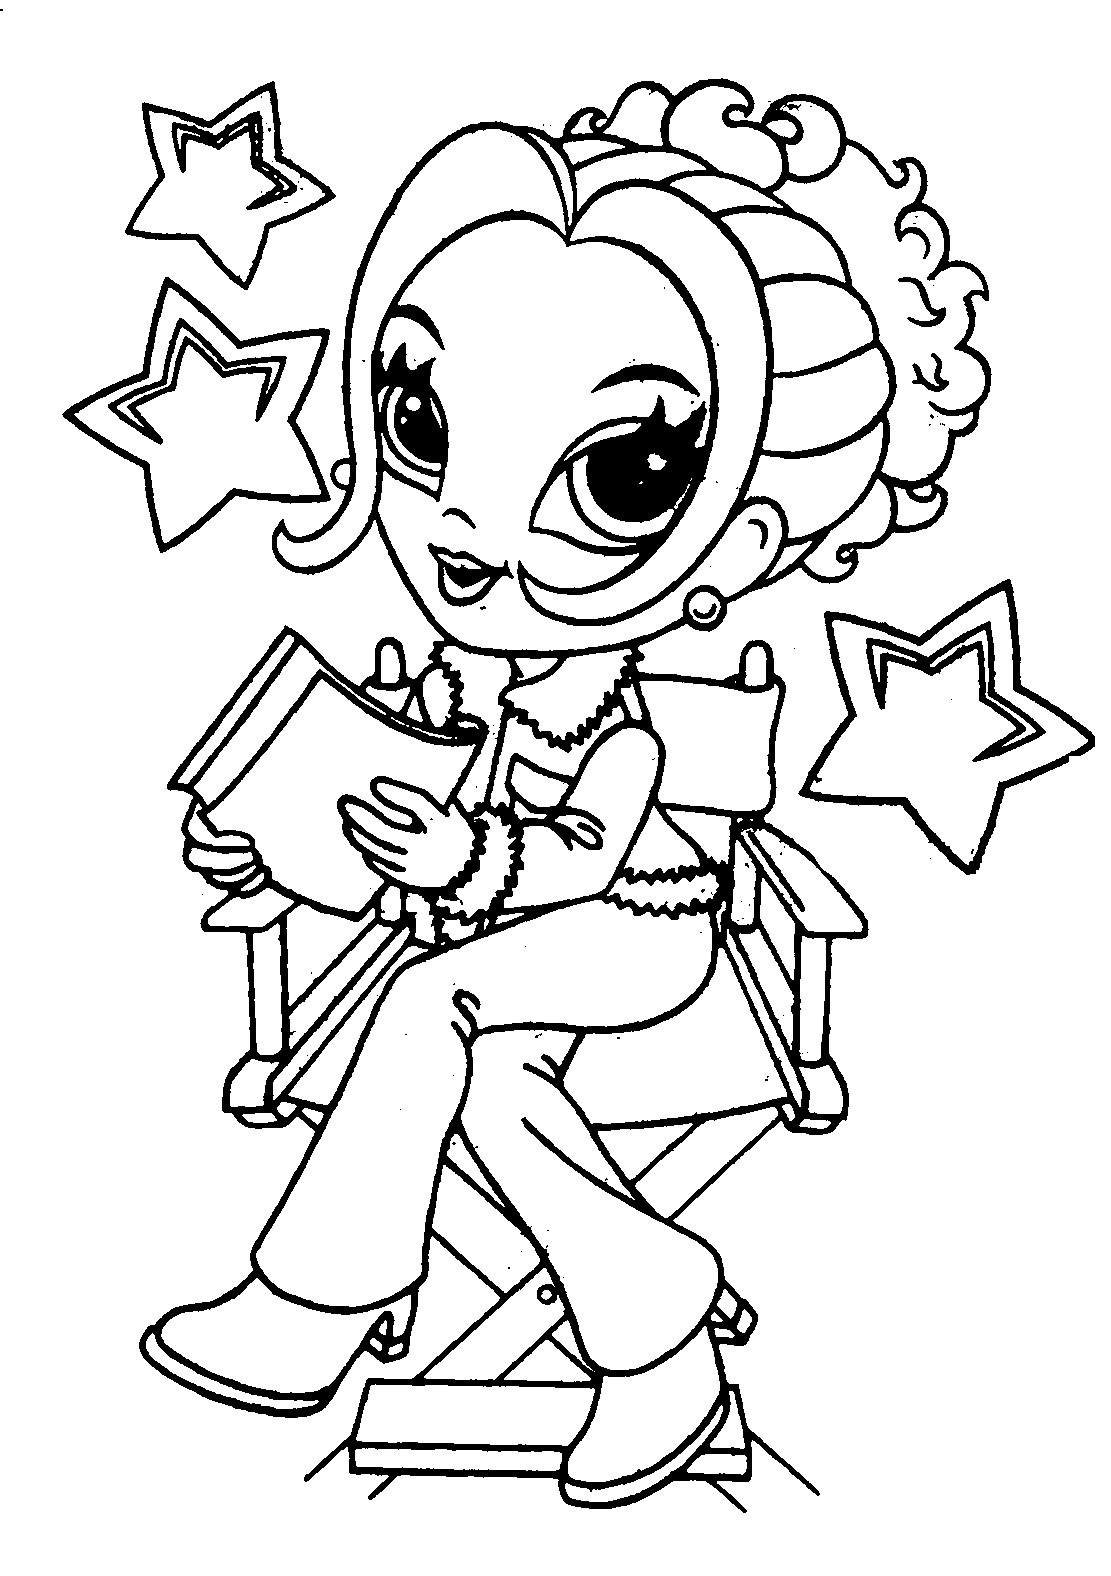 coloring pages for kids girls equestria girls coloring pages best coloring pages for kids kids coloring for pages girls